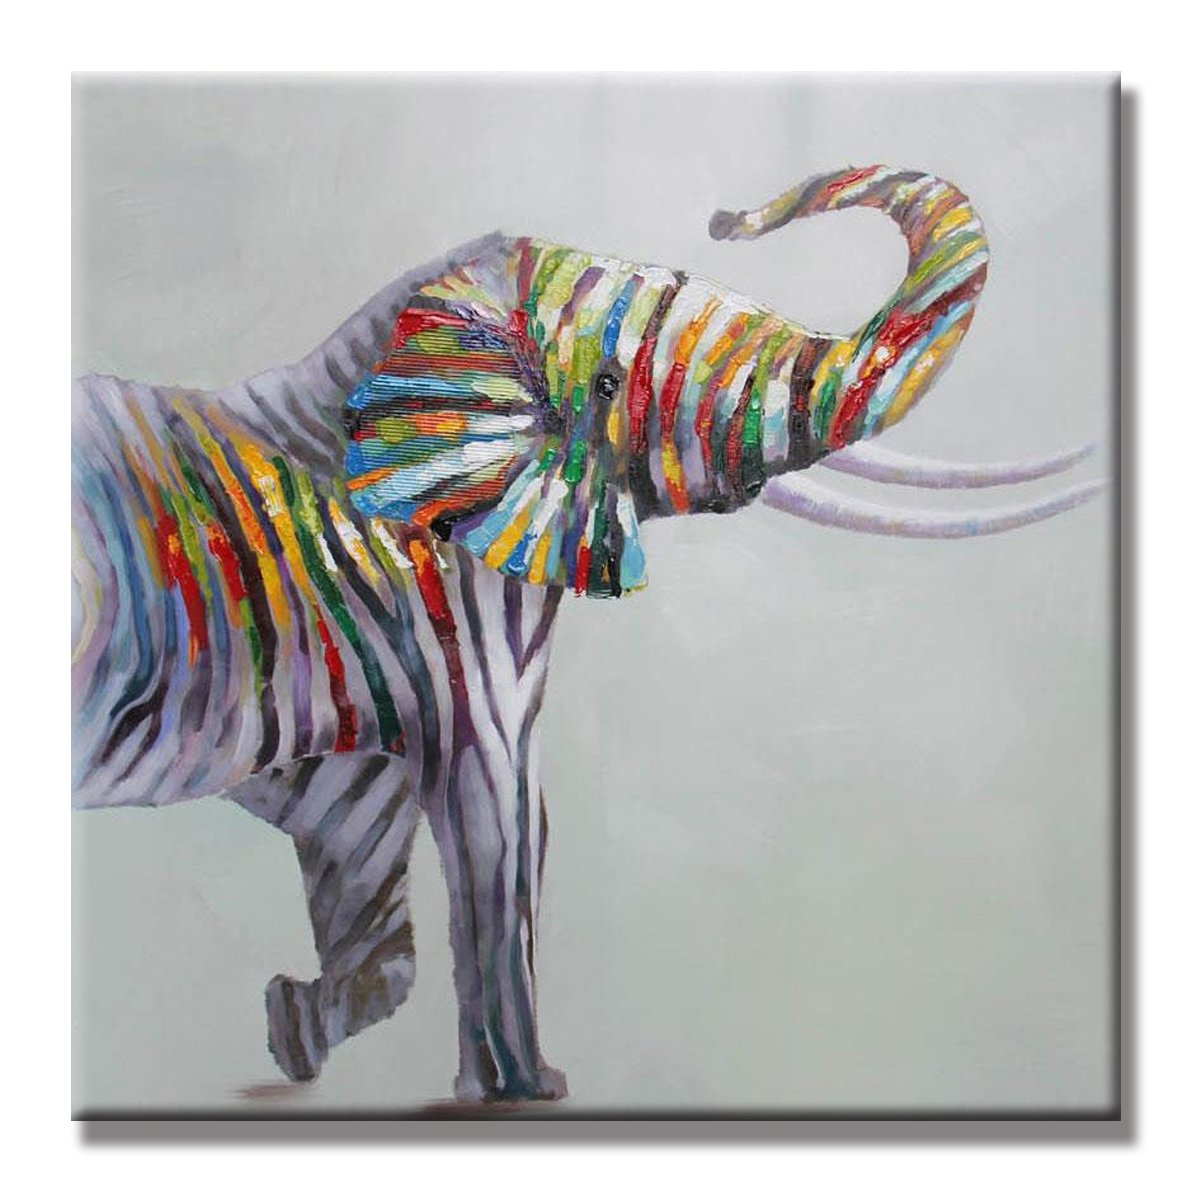 SEVEN WALL ARTS - 100% Hand Painted Oil Painting Cute Colorful Animal Elephant Decorative Artwork for Home Decor 24 x 24 Inch